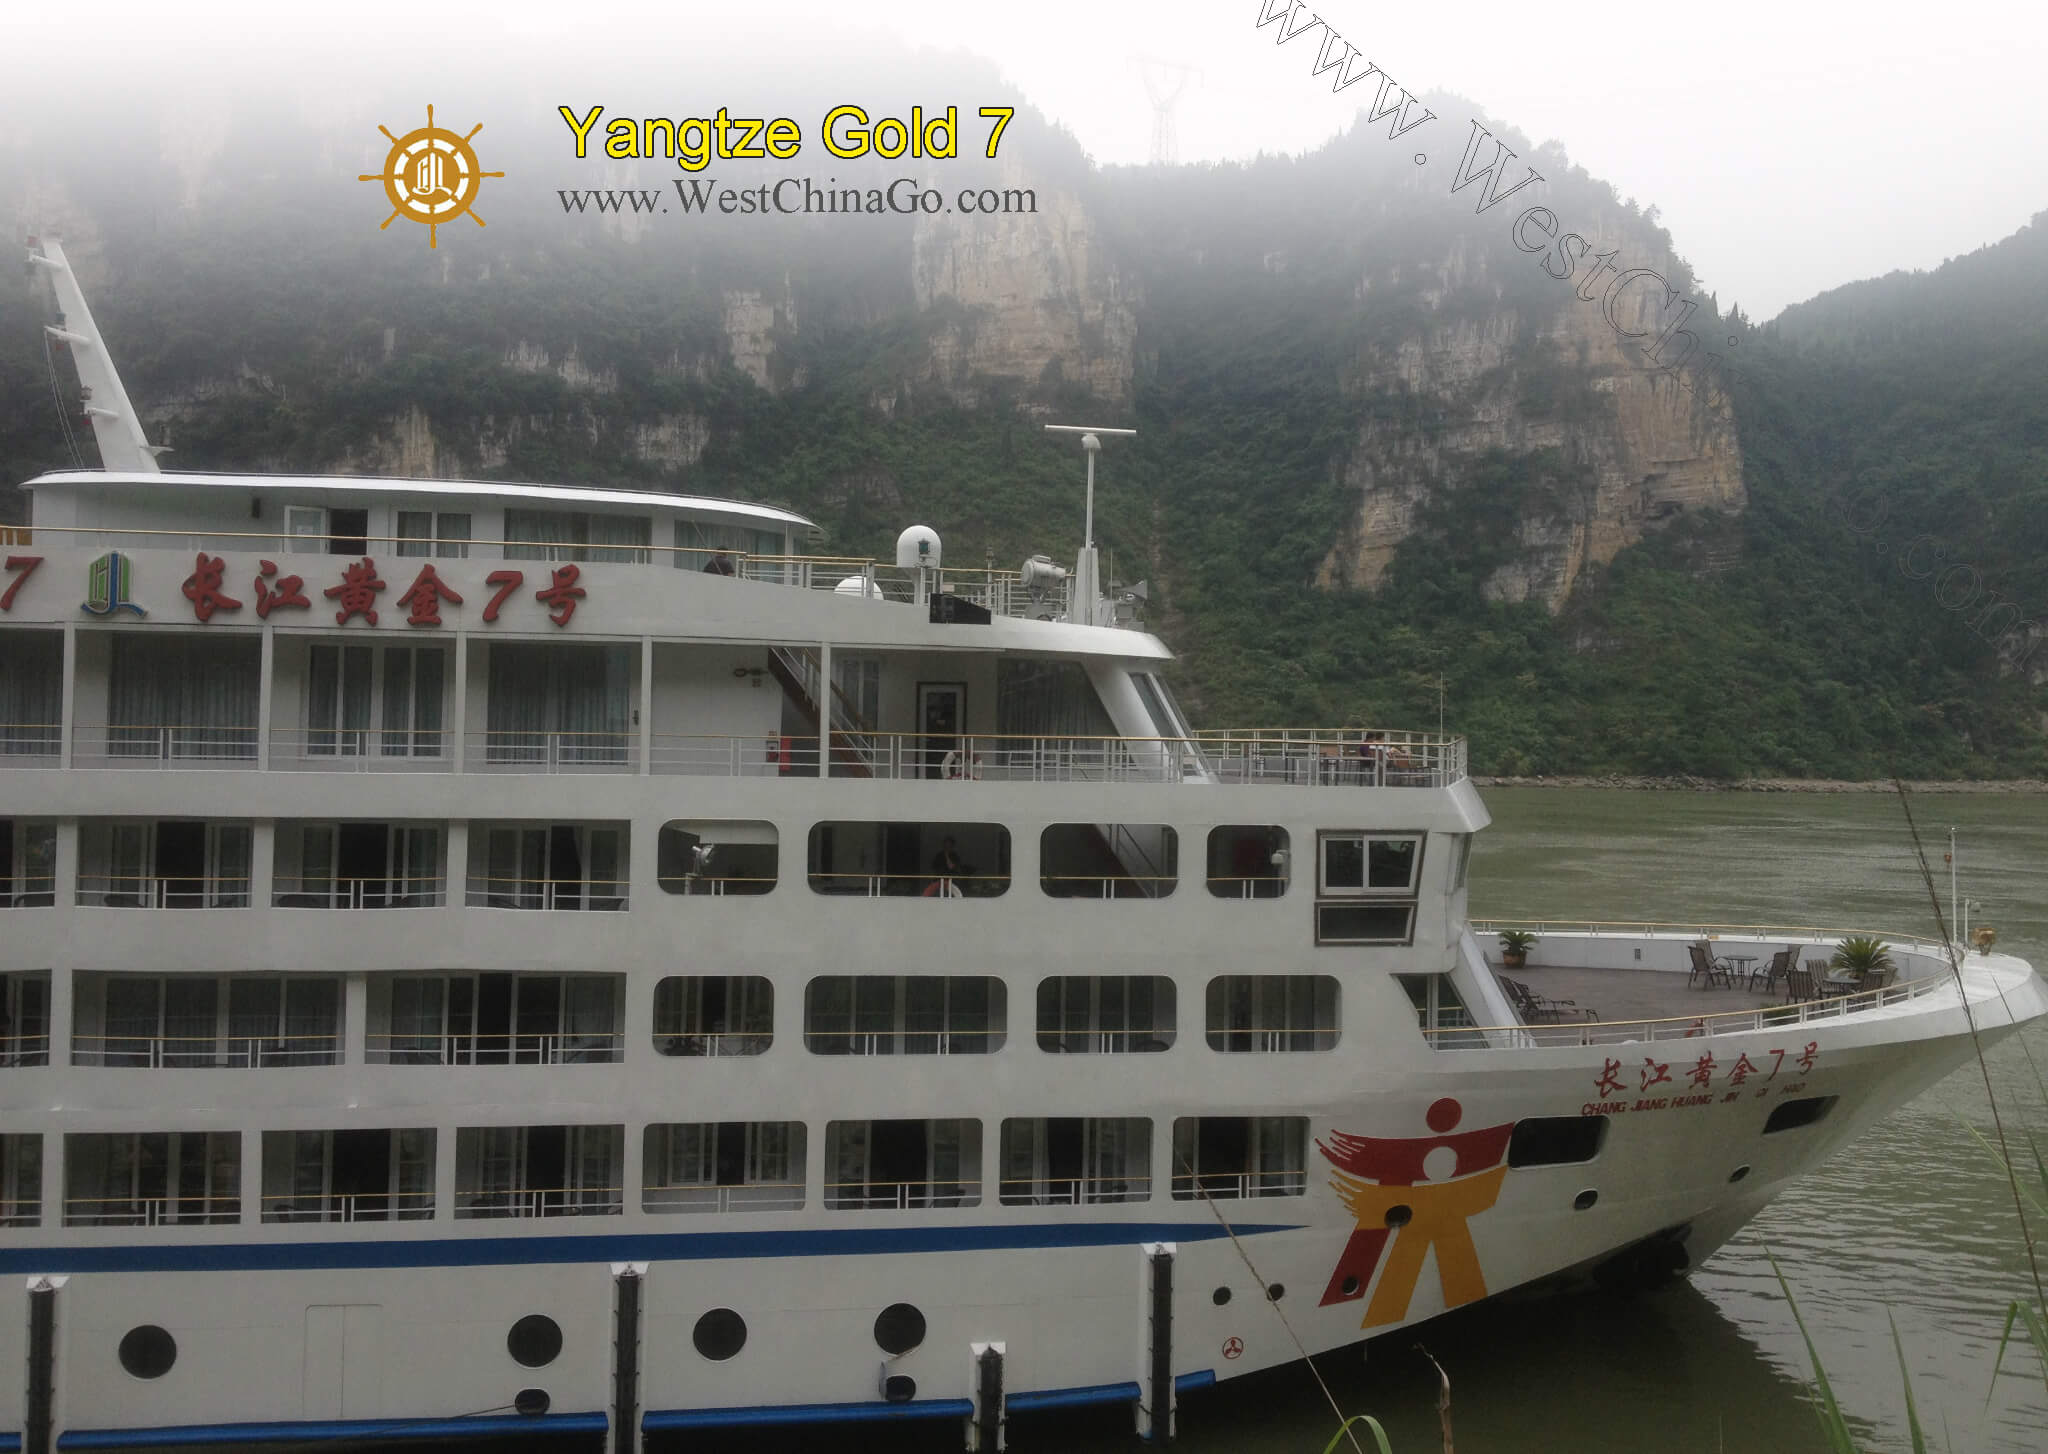 yangtze river cruise gold 7